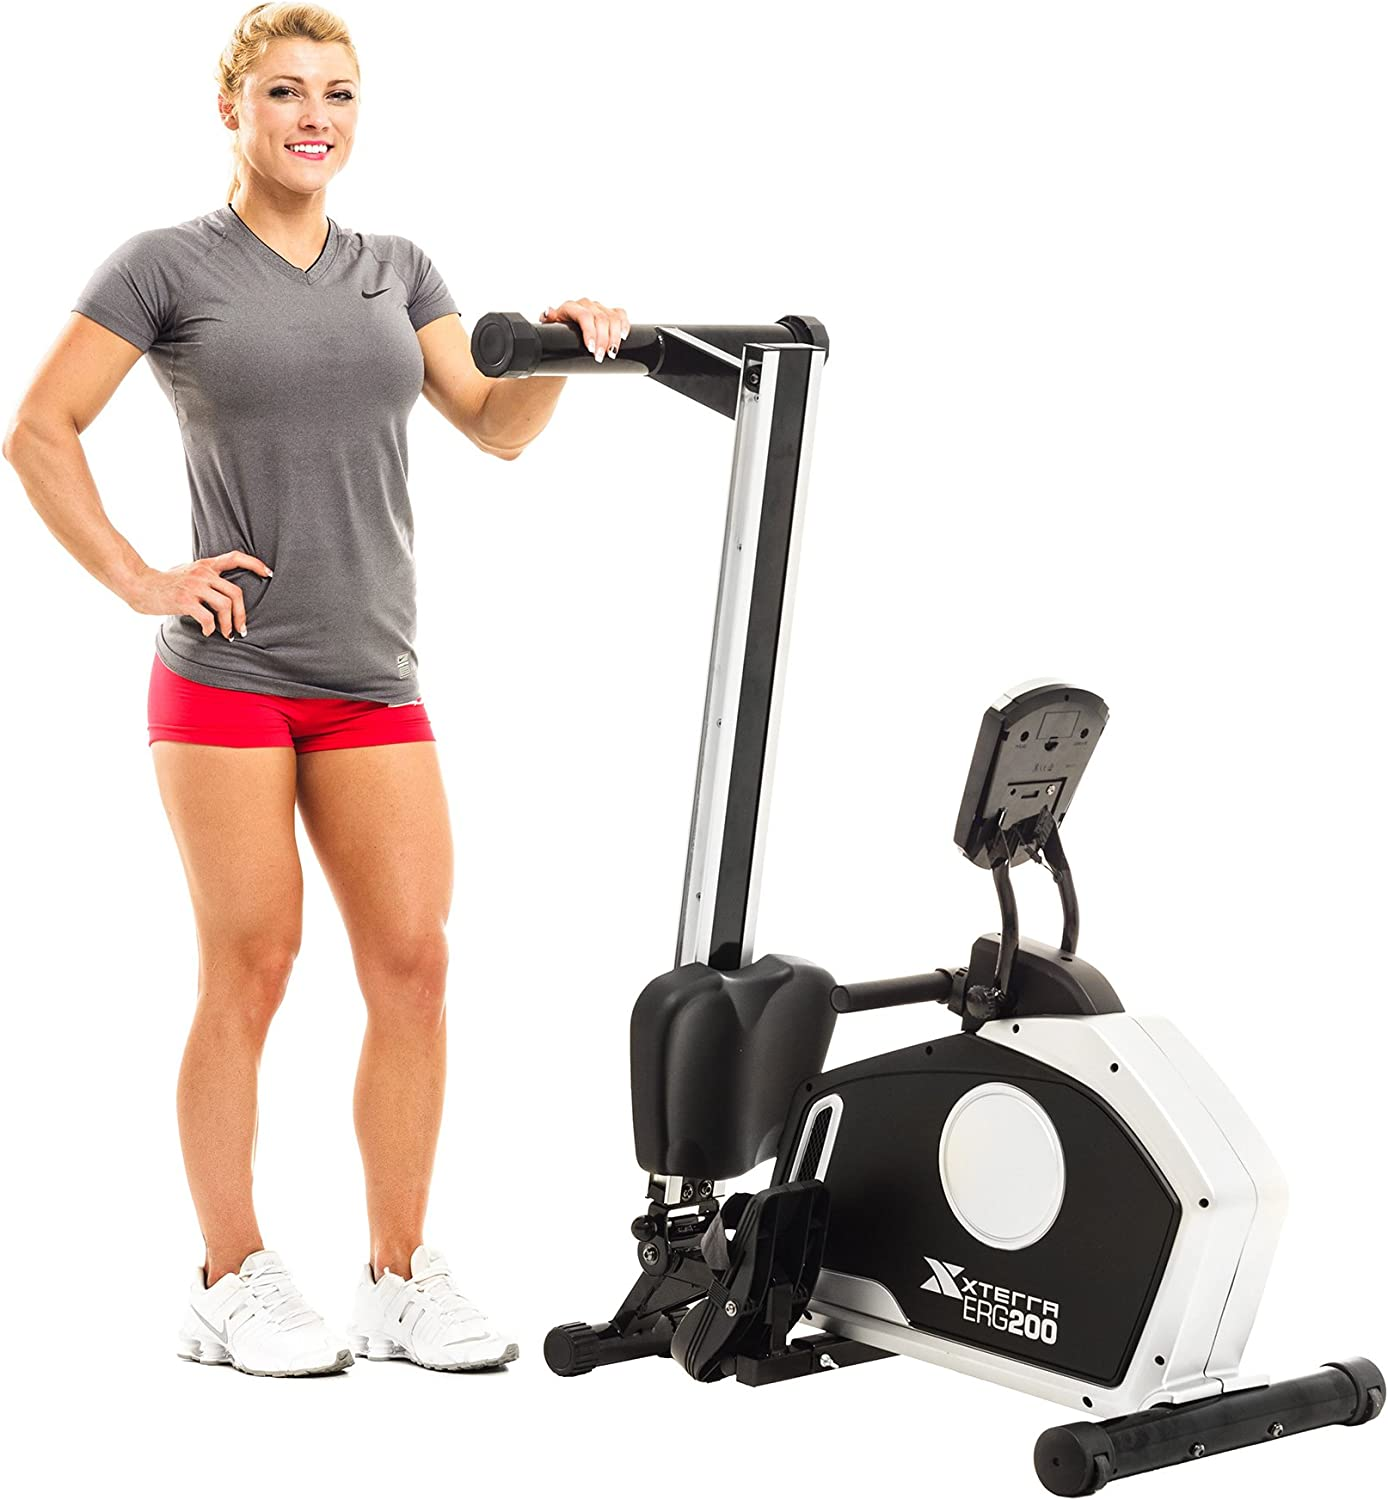 71RrHQdO7OL. AC SL1500 Best Rowing Machines Under $1000 2021 [Most Affordable]